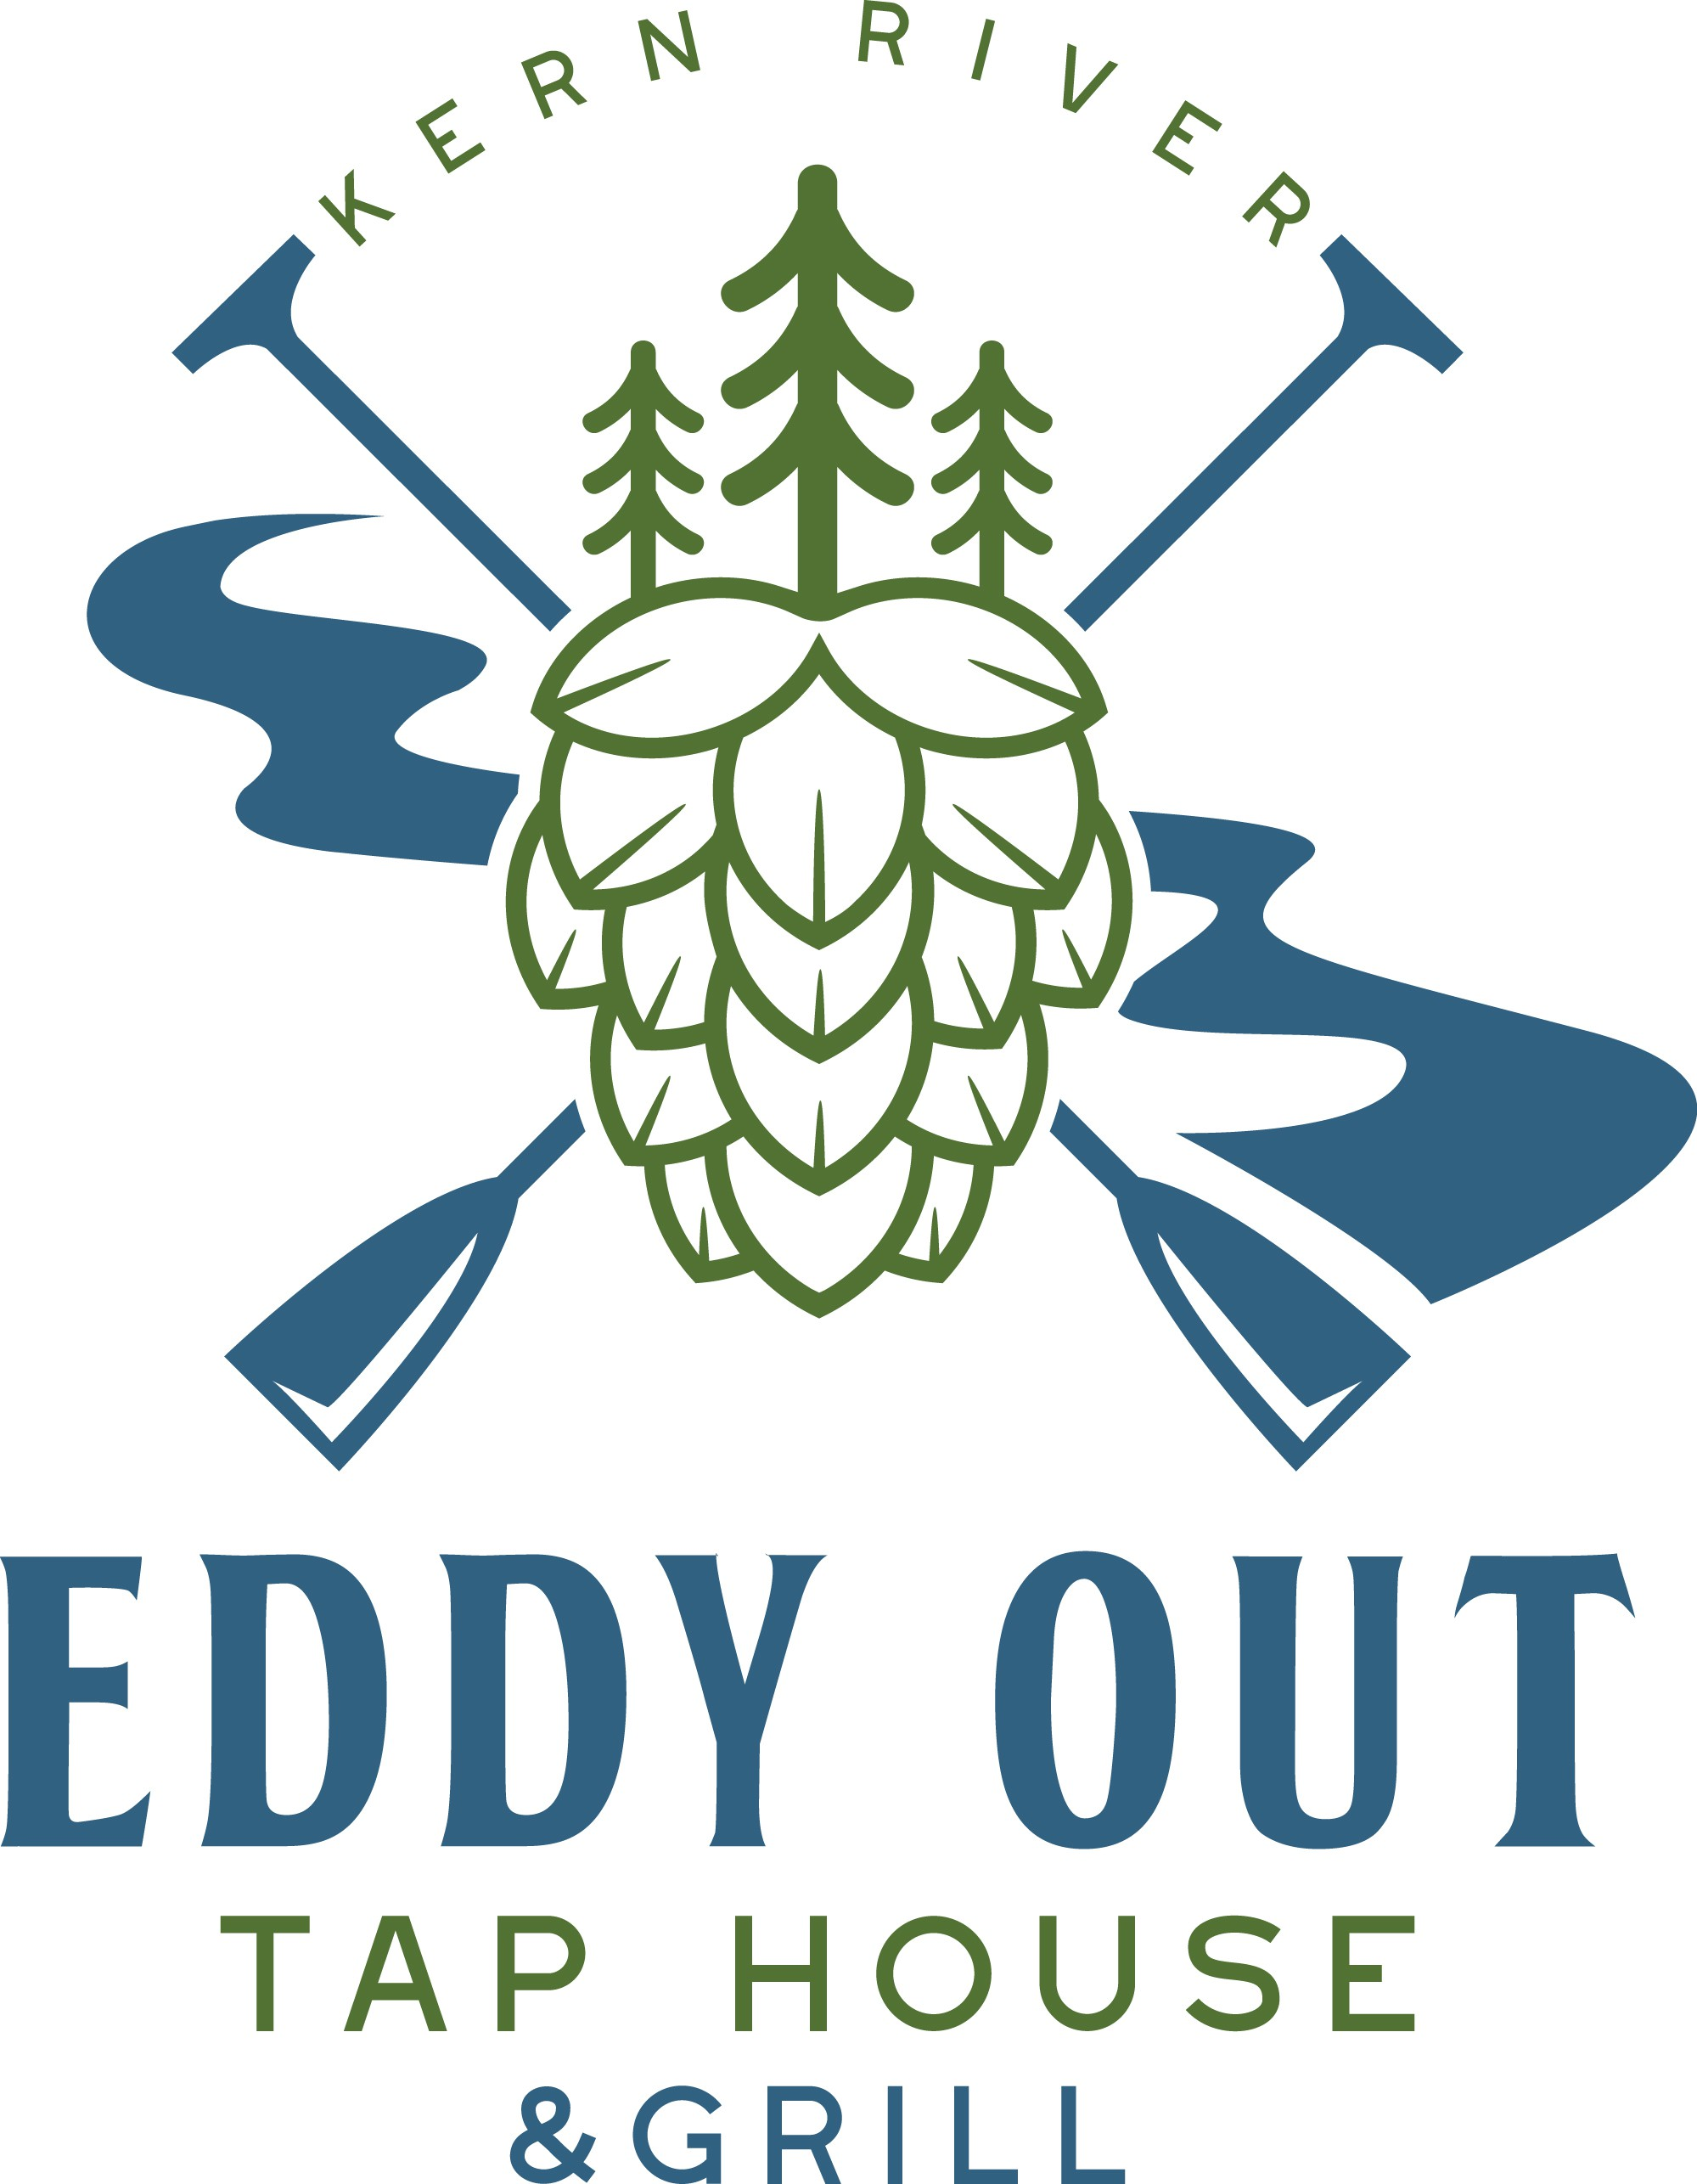 We need a logo for our Tap House on the Kern River that screams Eddy out!